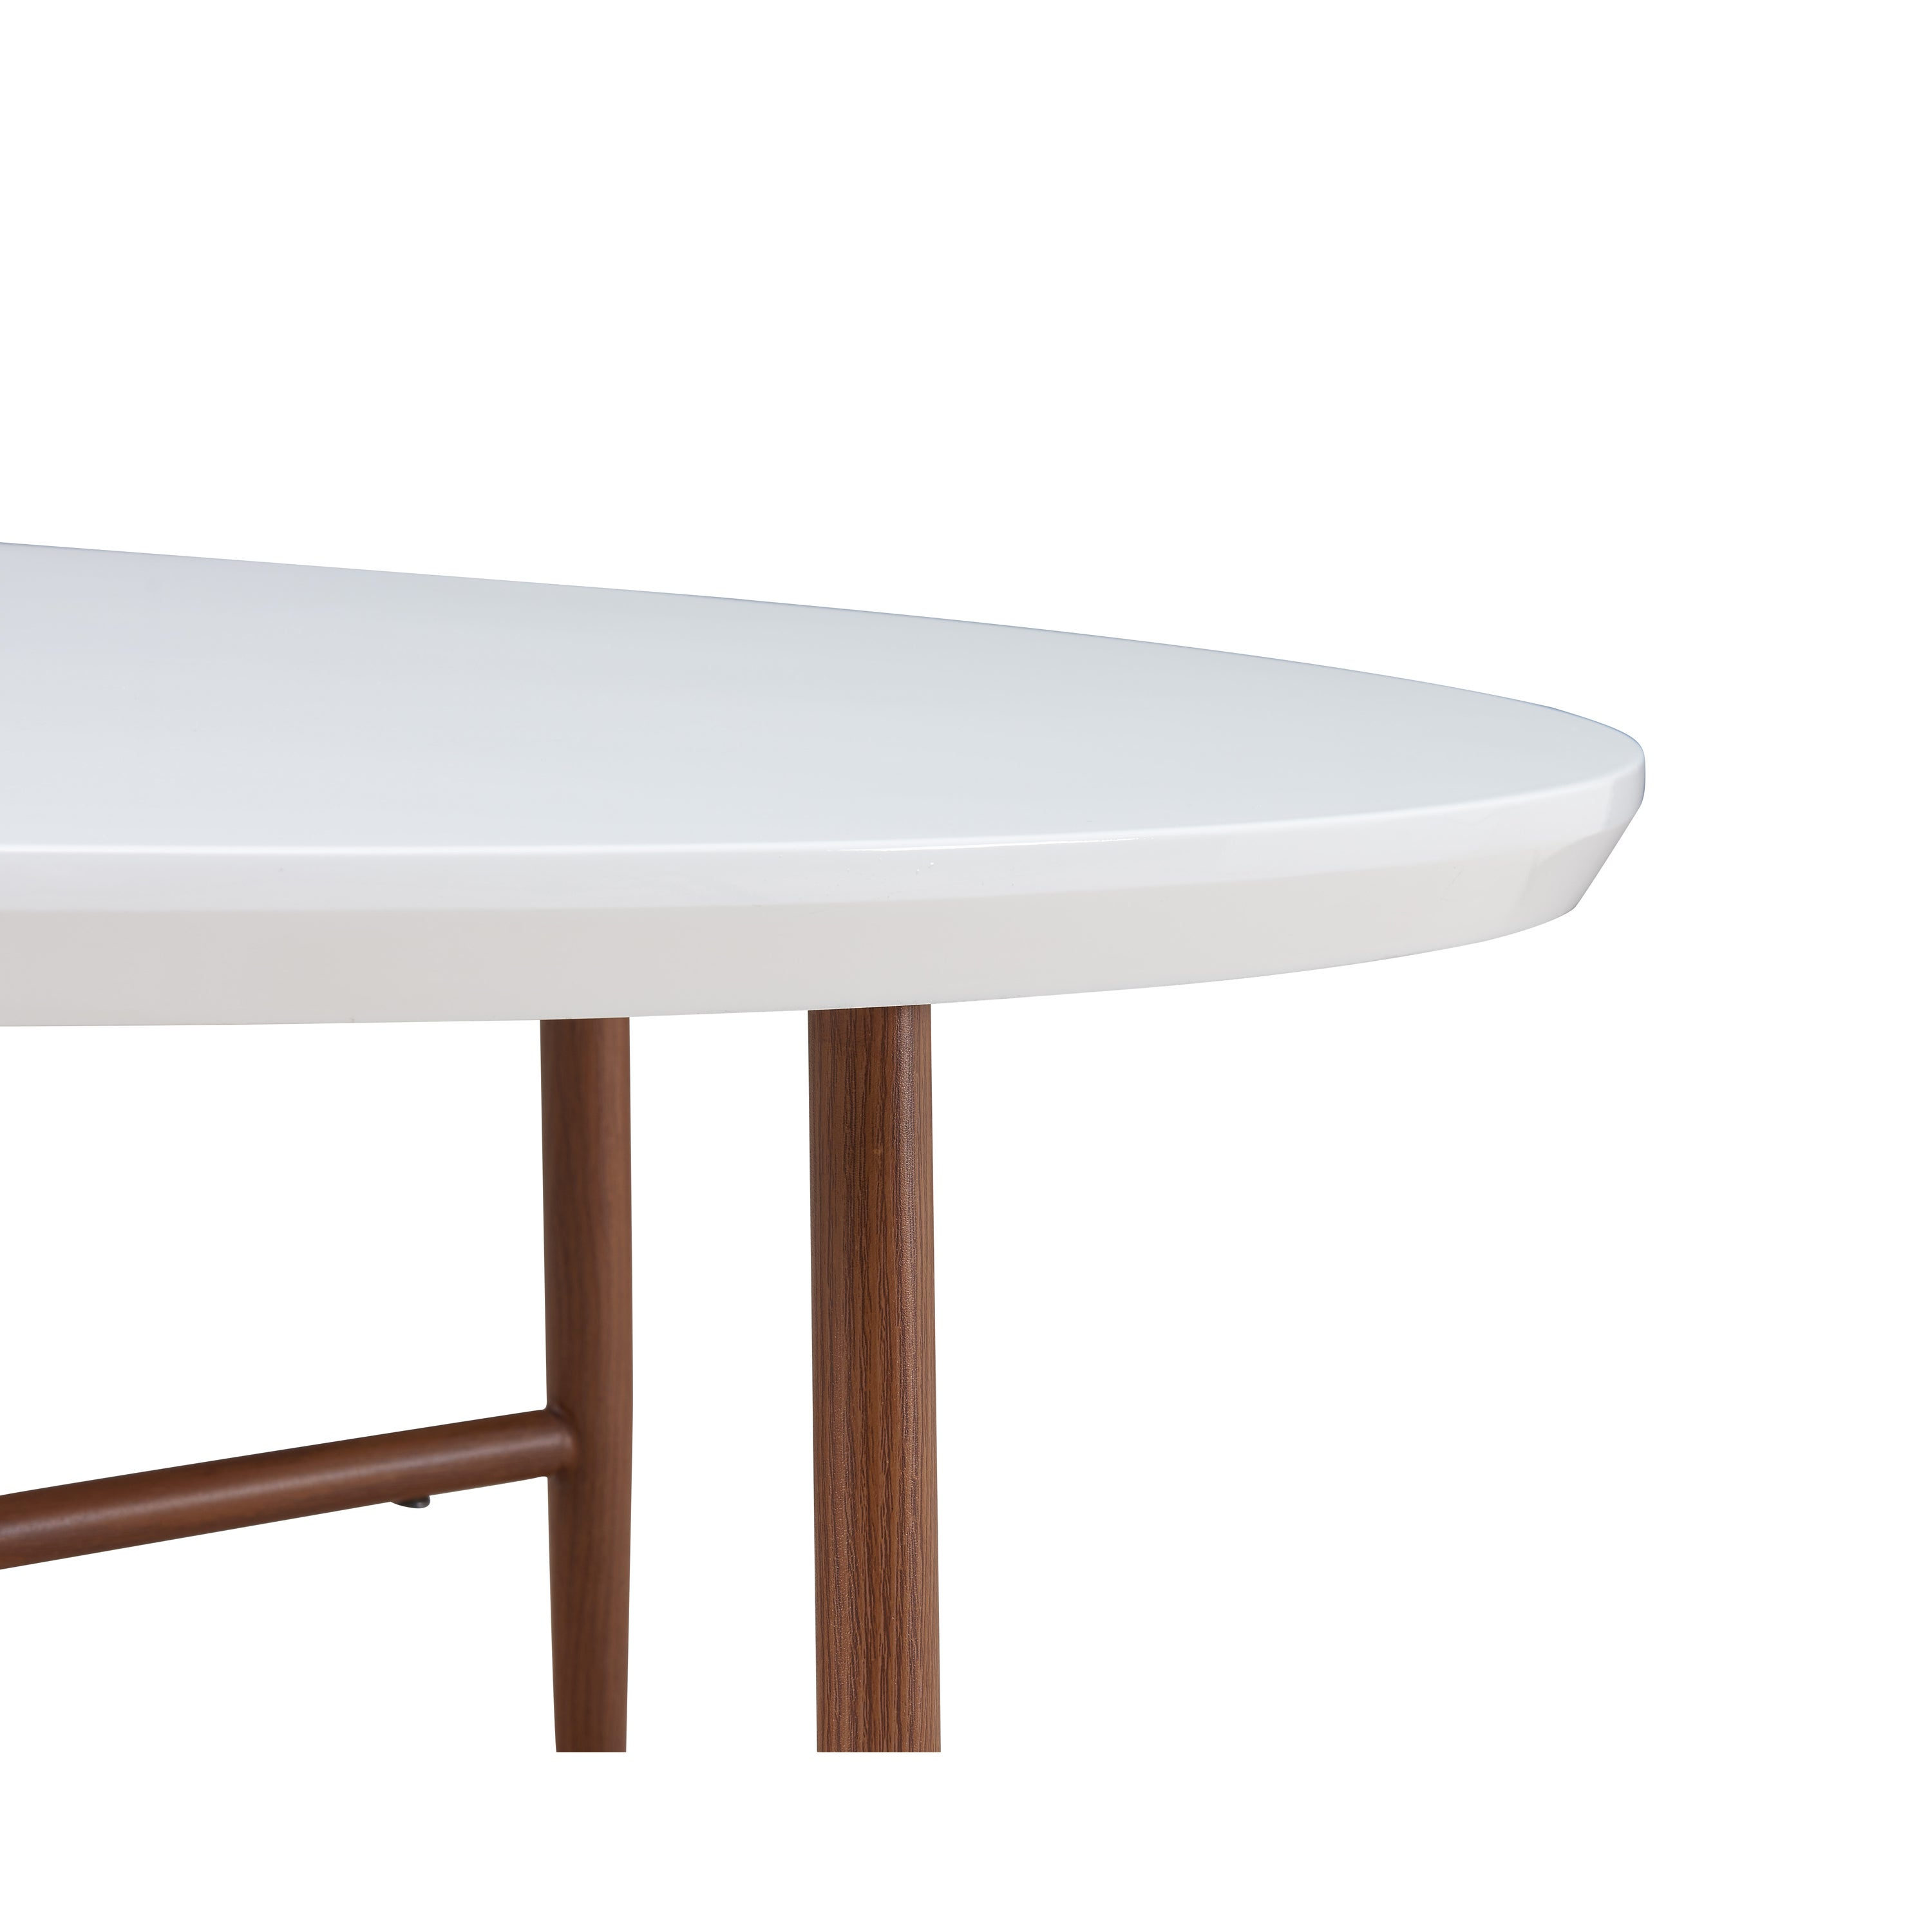 Most Popular Handy Living Miami White Oval Coffee Tables With Brown Metal Legs Pertaining To Handy Living Miami White Oval Coffee Table With Brown Metal Legs (View 5 of 20)